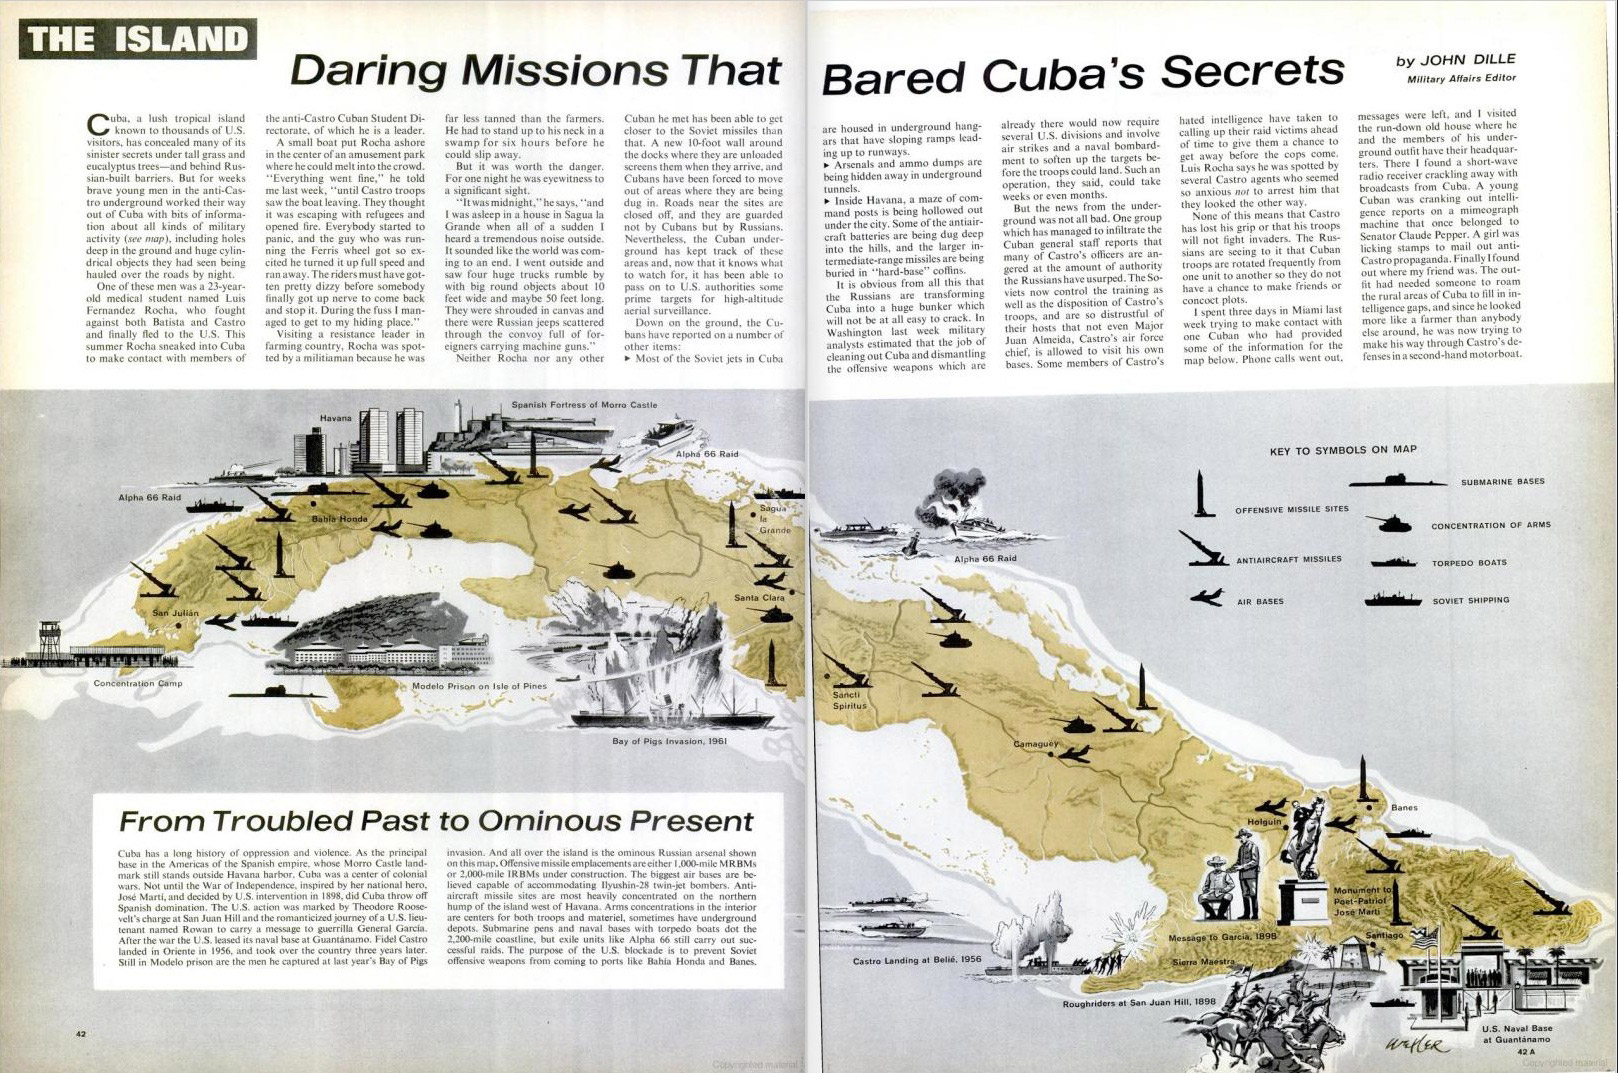 November 2, 1962 issue of LIFE magazine. Spread shows an illustration of the placement of Soviet missiles in Cuba.